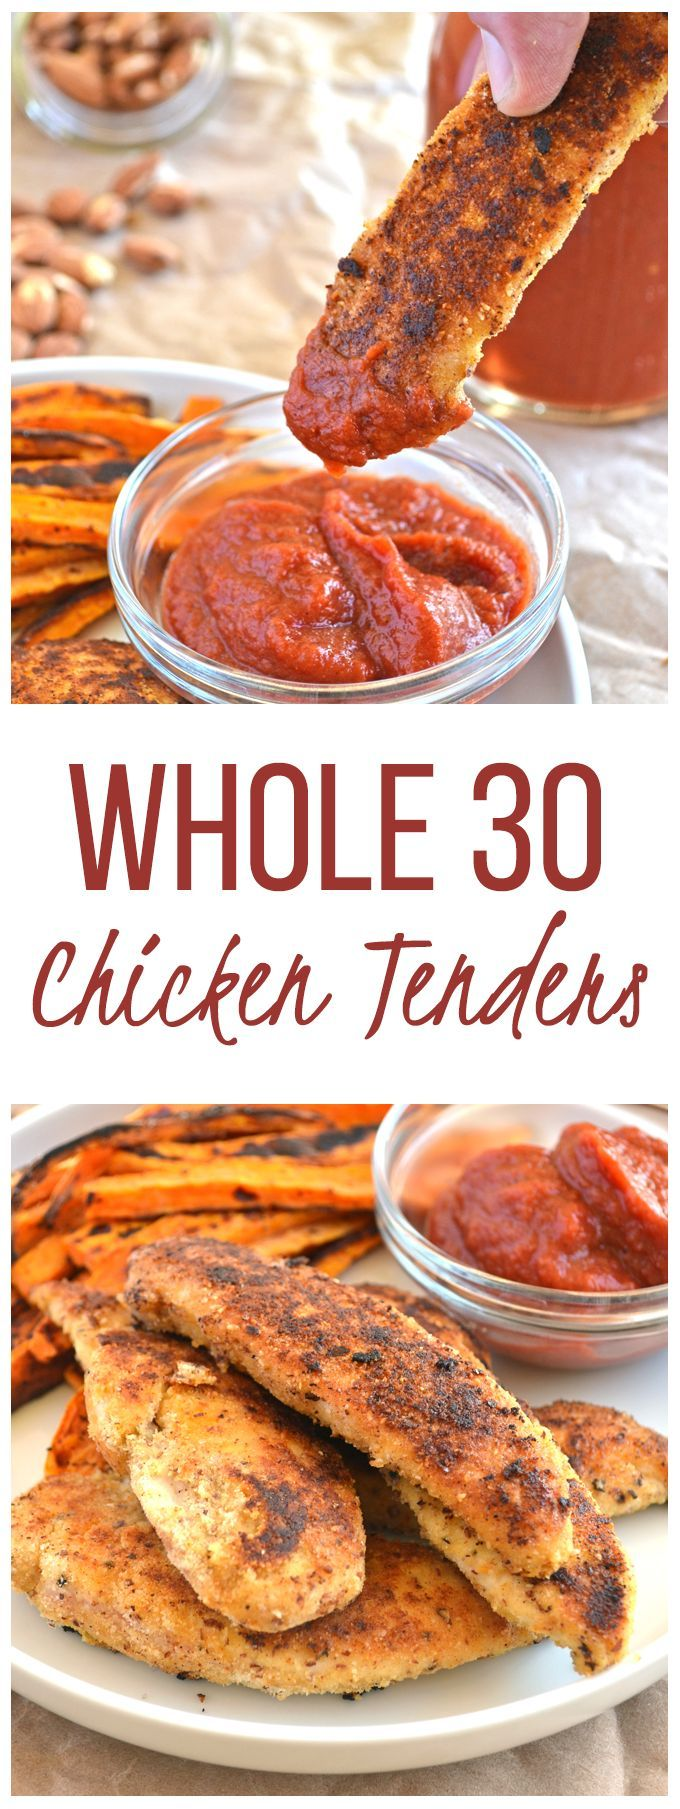 Whole30 Chicken Tenders - coating made with almond meal & coconut flour! A quick paleo meal you will love!